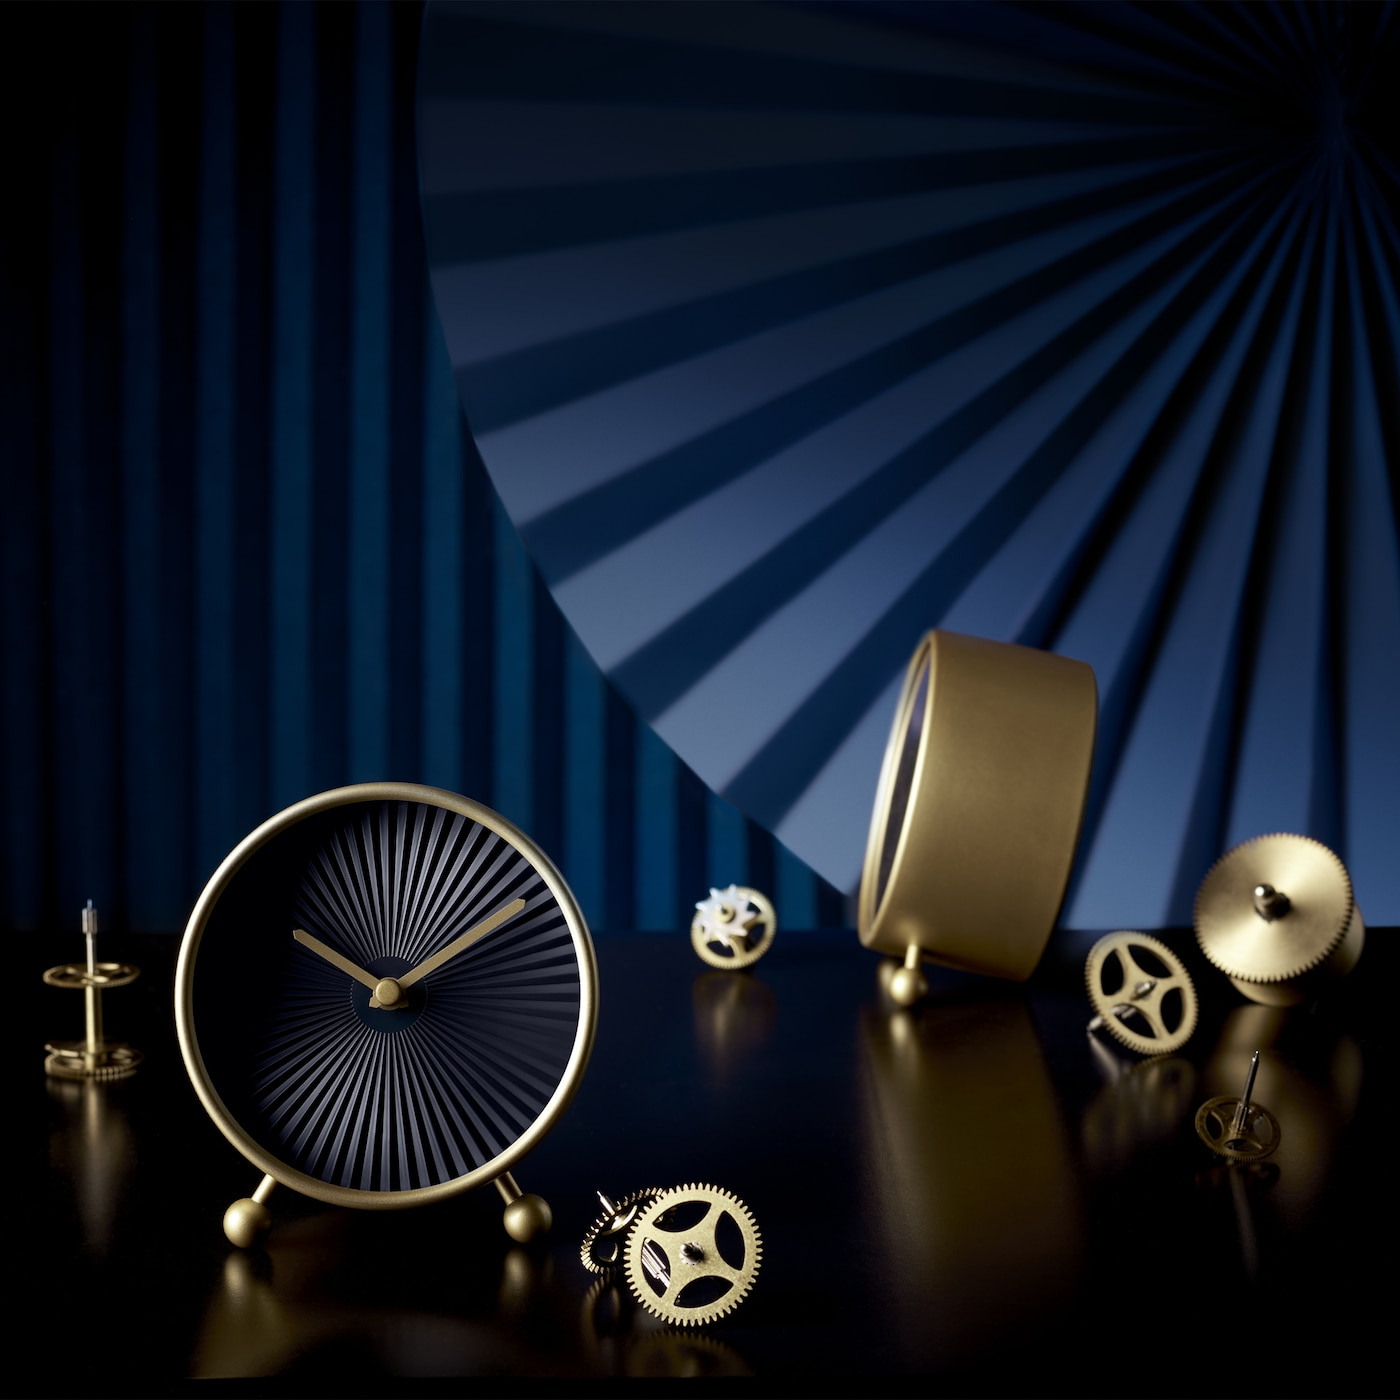 Time is golden with IKEA SNOFSA clock. The brass indicators set against a black clock face add a glimpse of luxury to your bedside table.